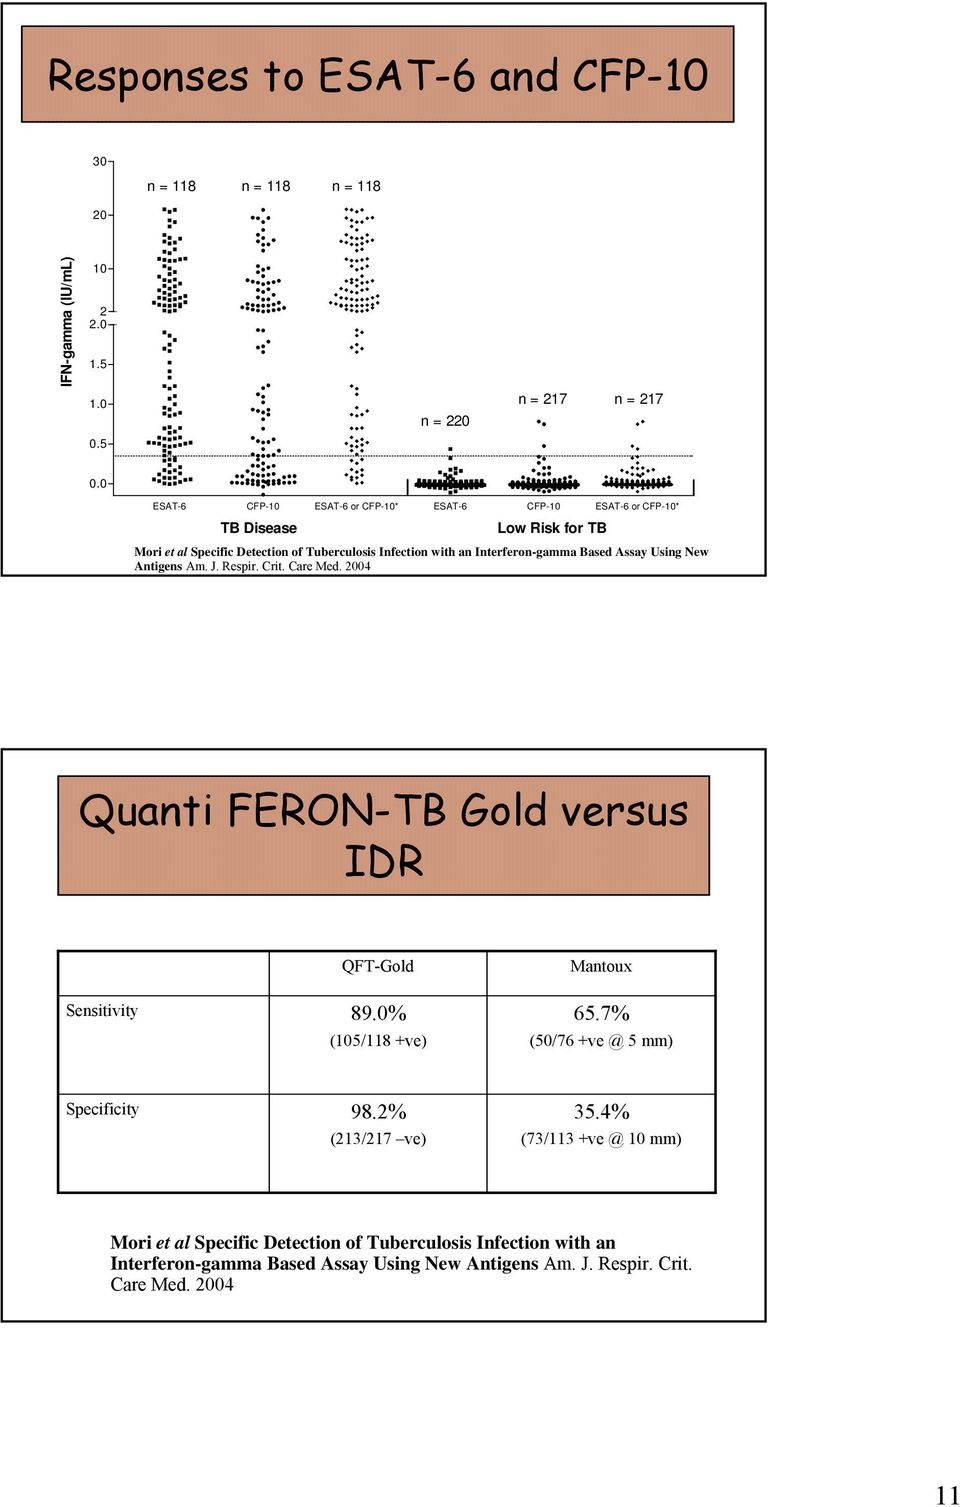 Interferon-gamma Based Assay Using New Antigens Am. J. Respir. Crit. Care Med. 2004 Quanti FERON-TB Gold versus IDR Sensitivity QFT-Gold 89.0% (105/118 +ve) Mantoux 65.